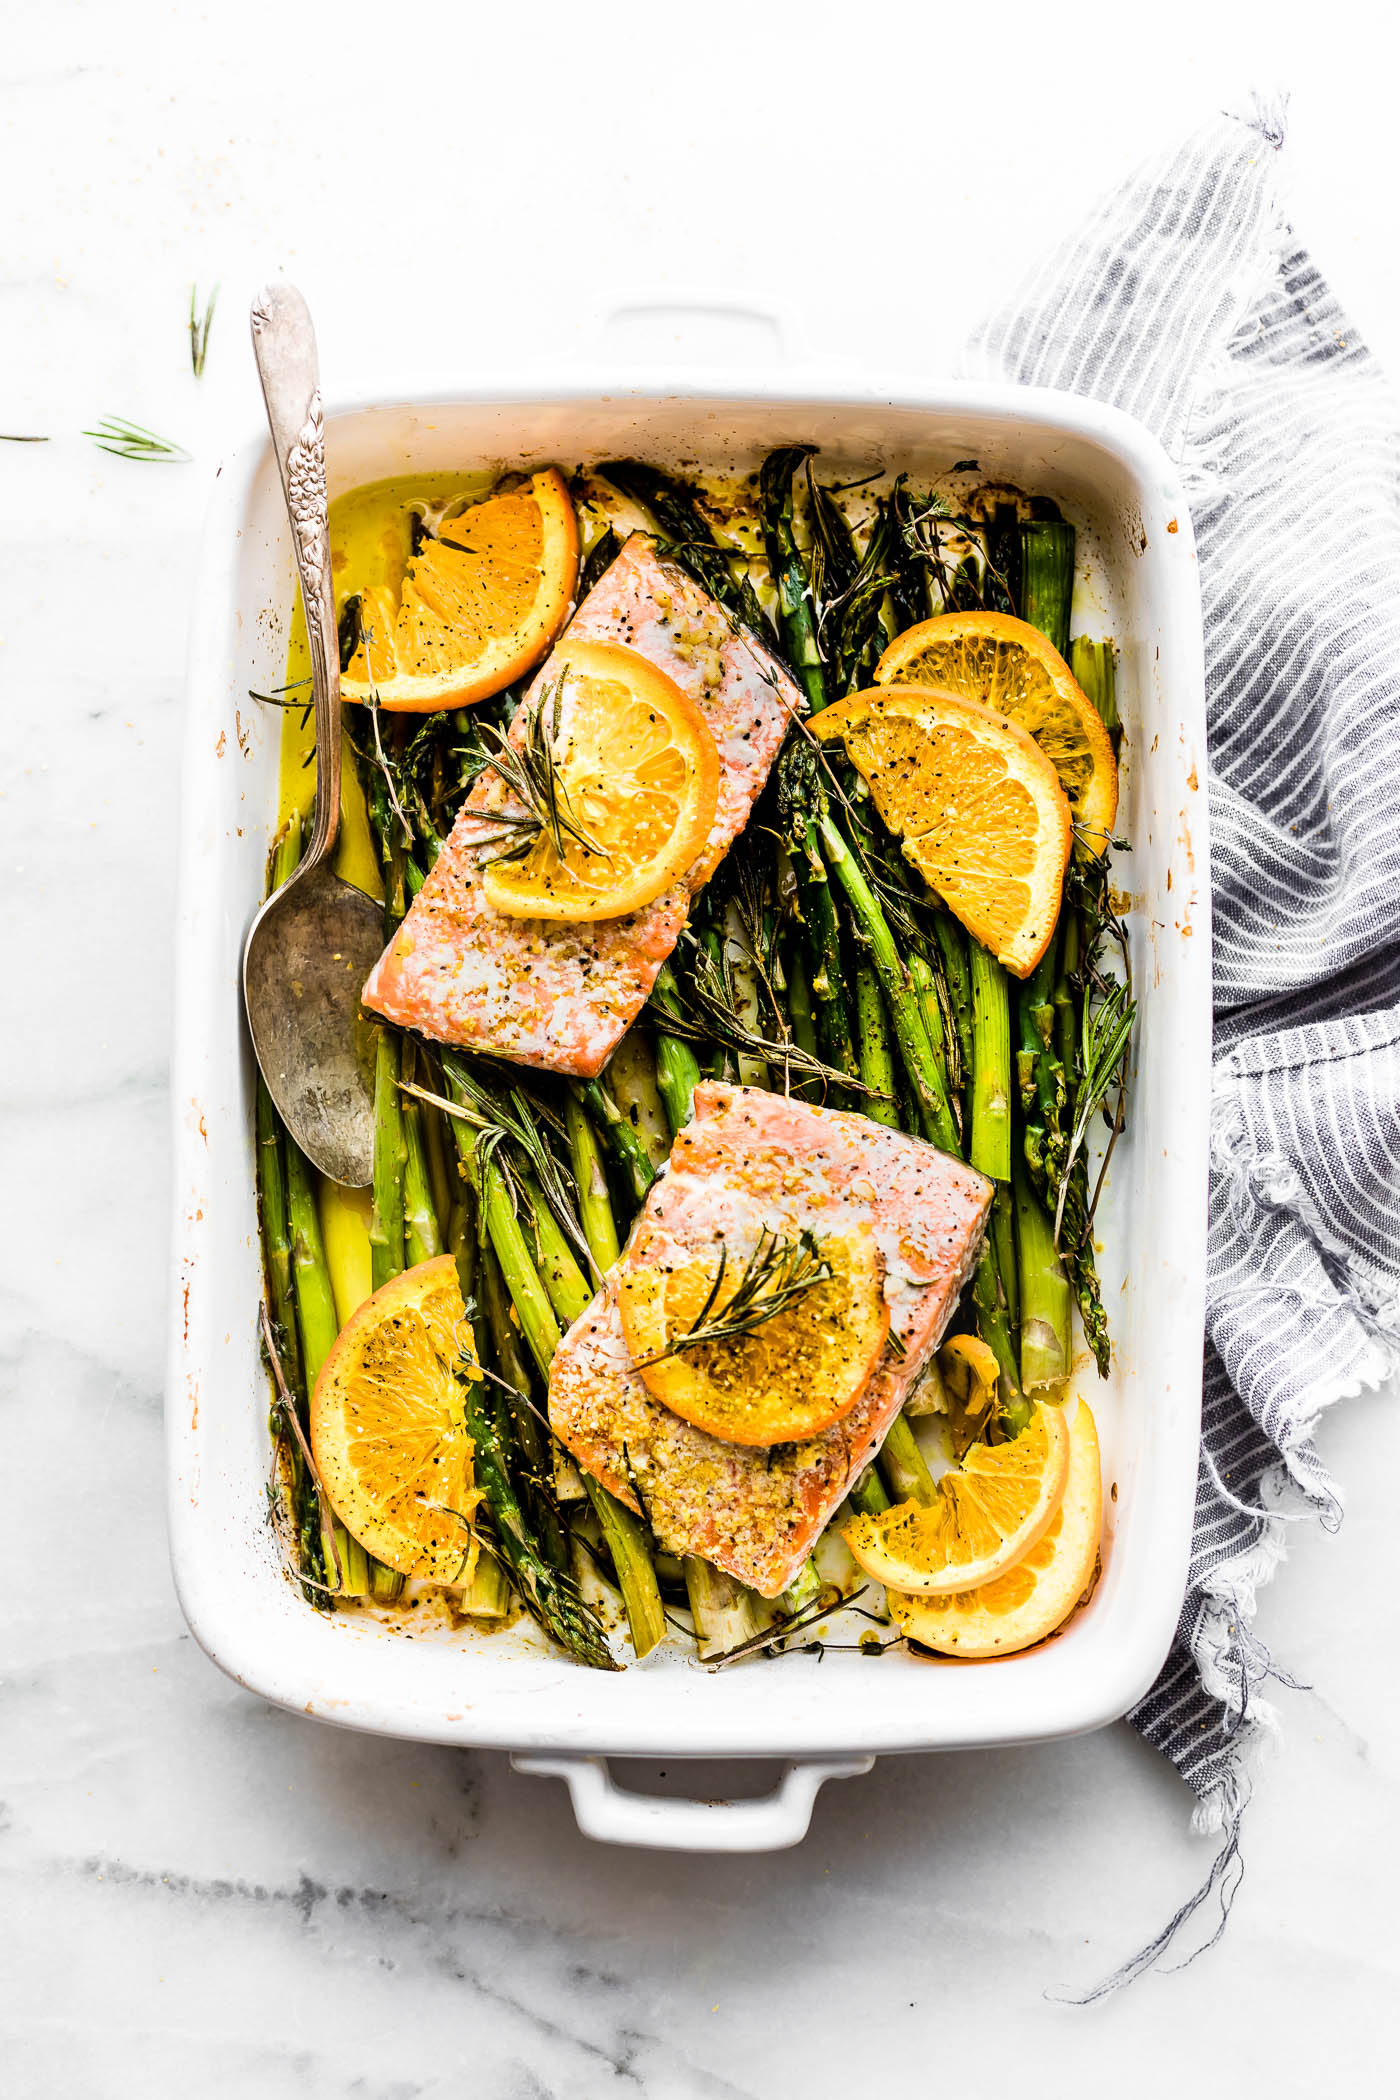 Rosemary citrus baked salmon is a healthy one pan meal ready in 20 minutes. A delicious baked salmon recipe that's simple to make. Paleo friendly.